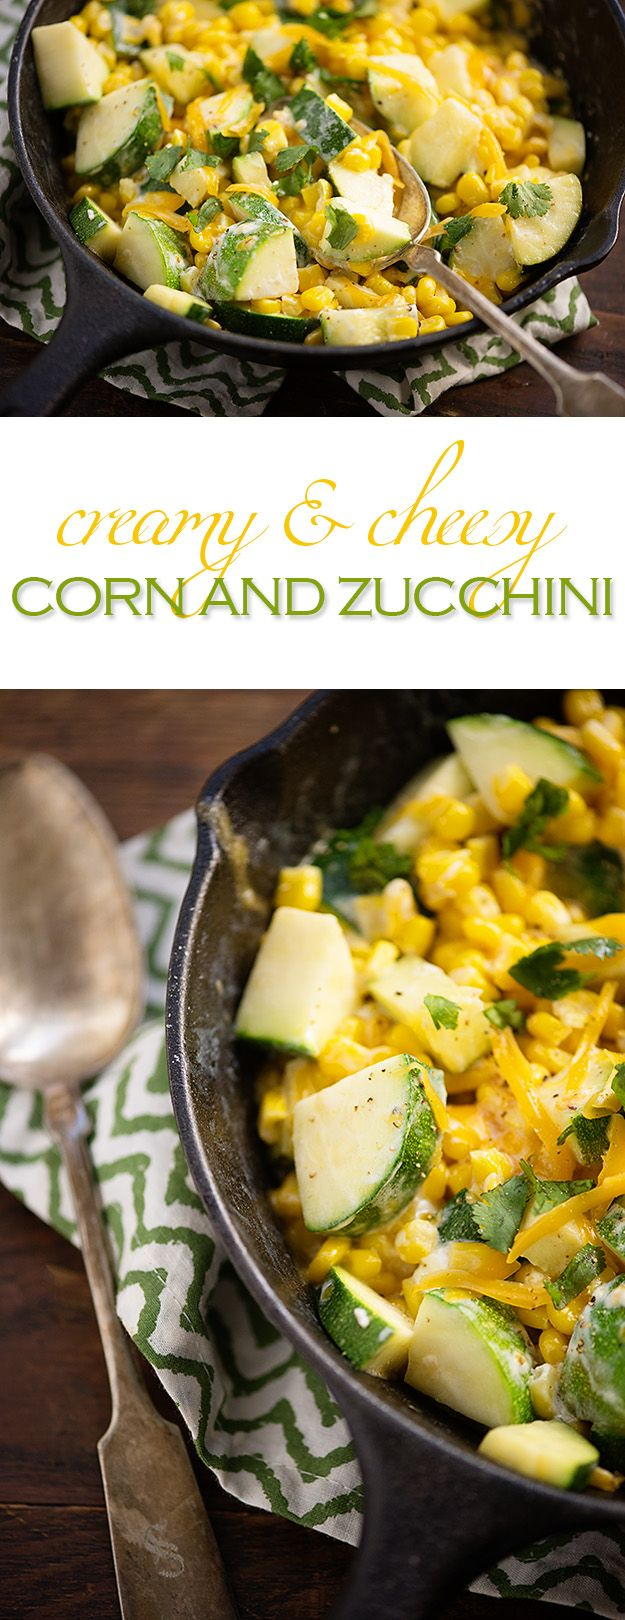 Creamy Corn and Zucchini | Recipe | The cheese, Vegetables and Ears of ...